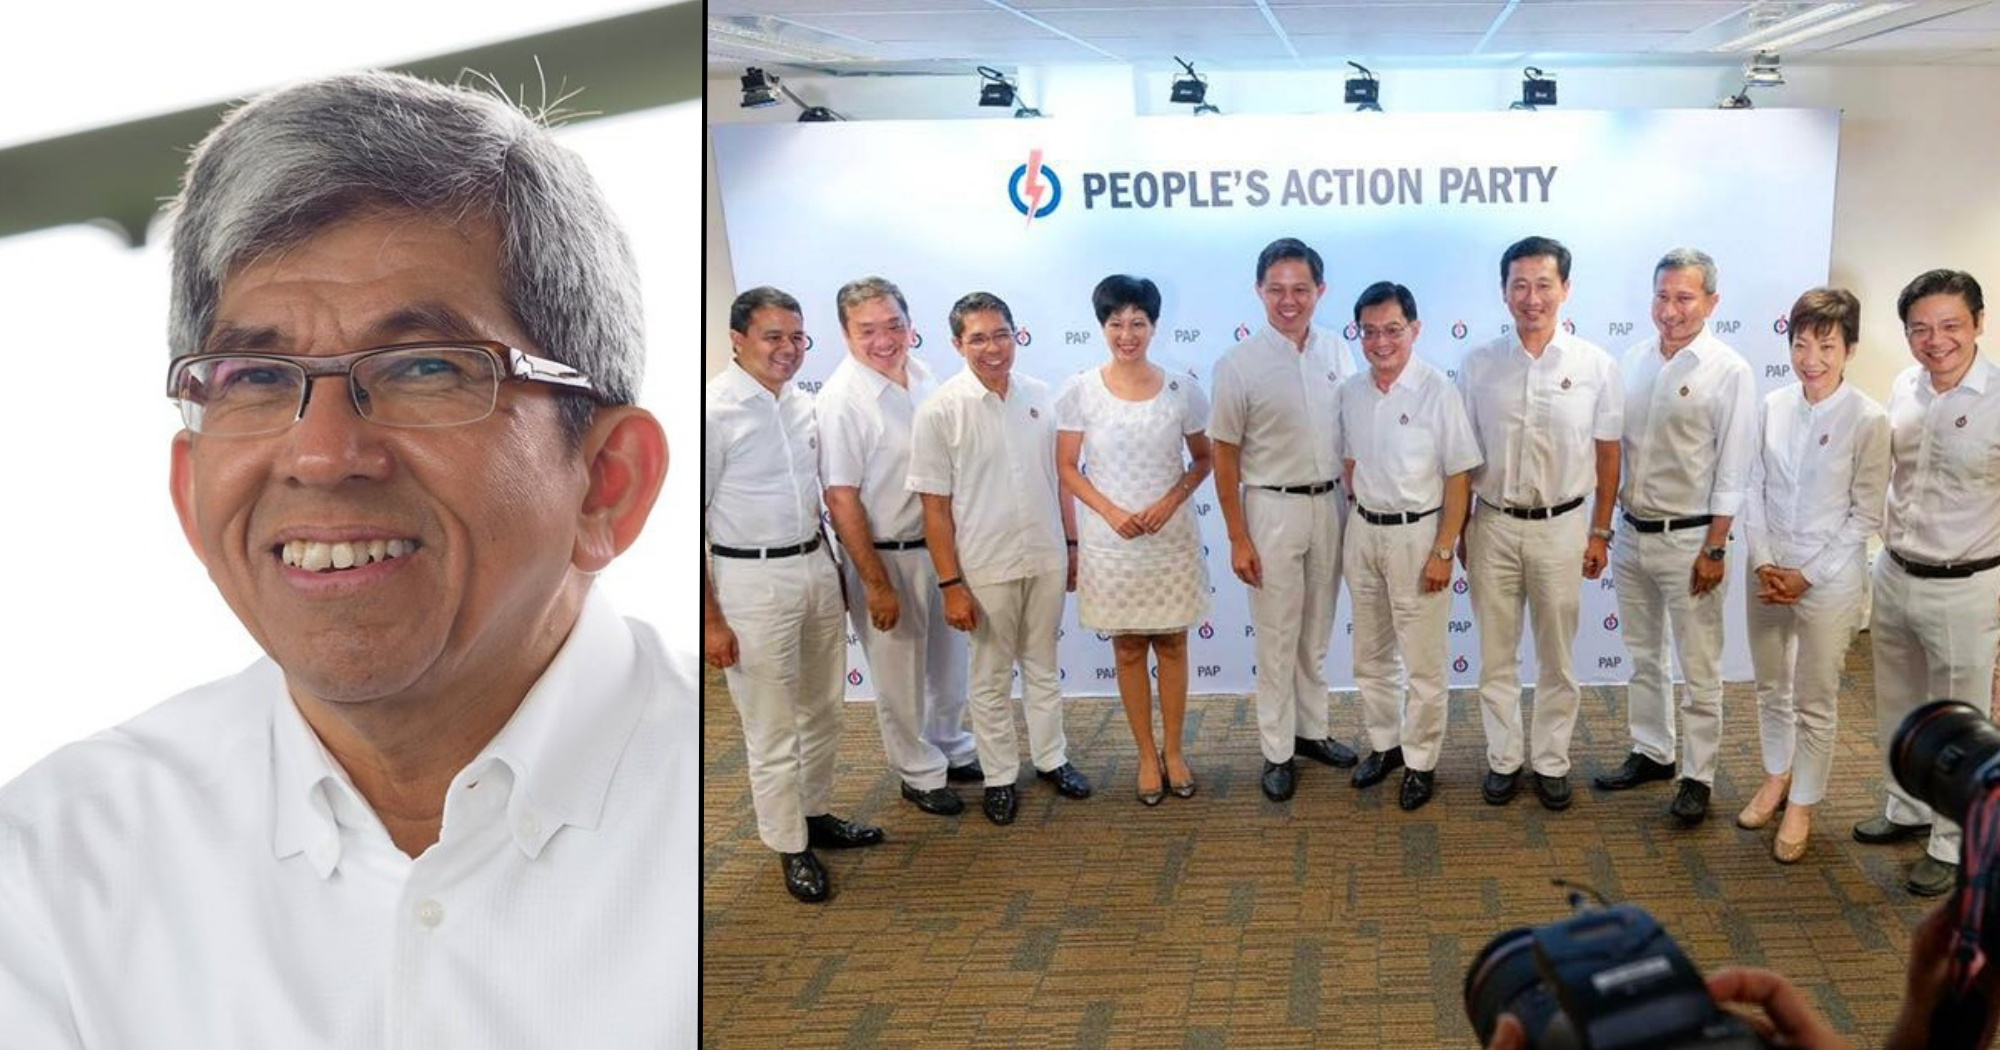 Ex-minister Yaacob Ibrahim: Next 4G leader should be chosen 'yesterday', but they'll likely need more time